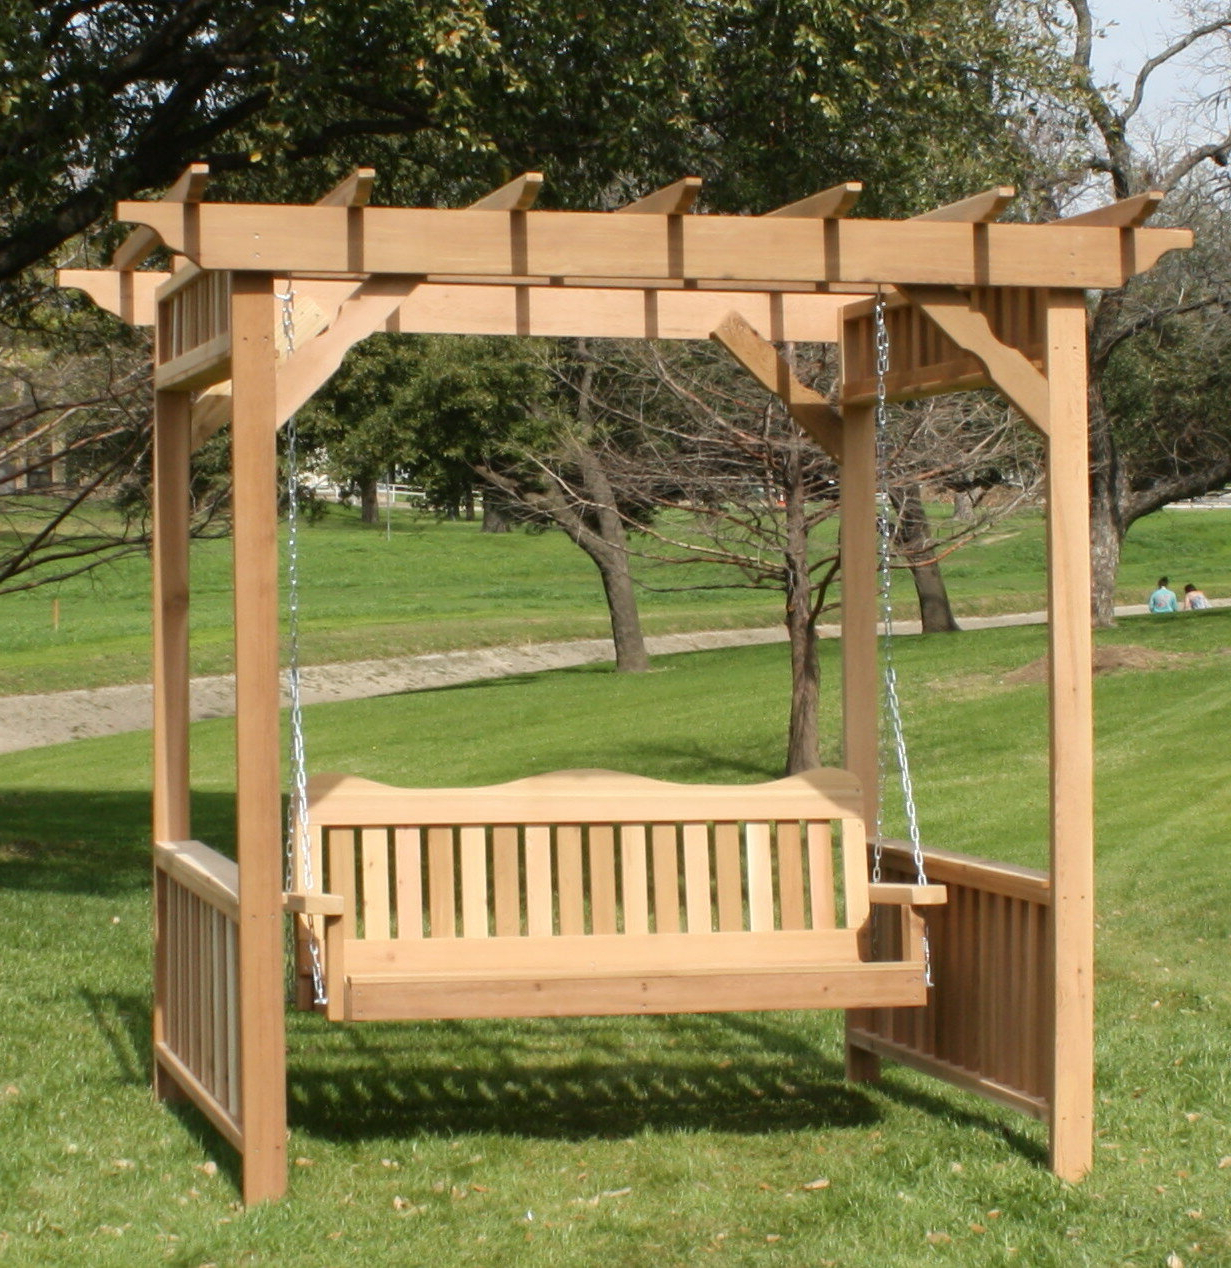 Trendy Thayer Cedar Arbor Porch Swing With Stand Inside Porch Swings With Stand (View 13 of 25)